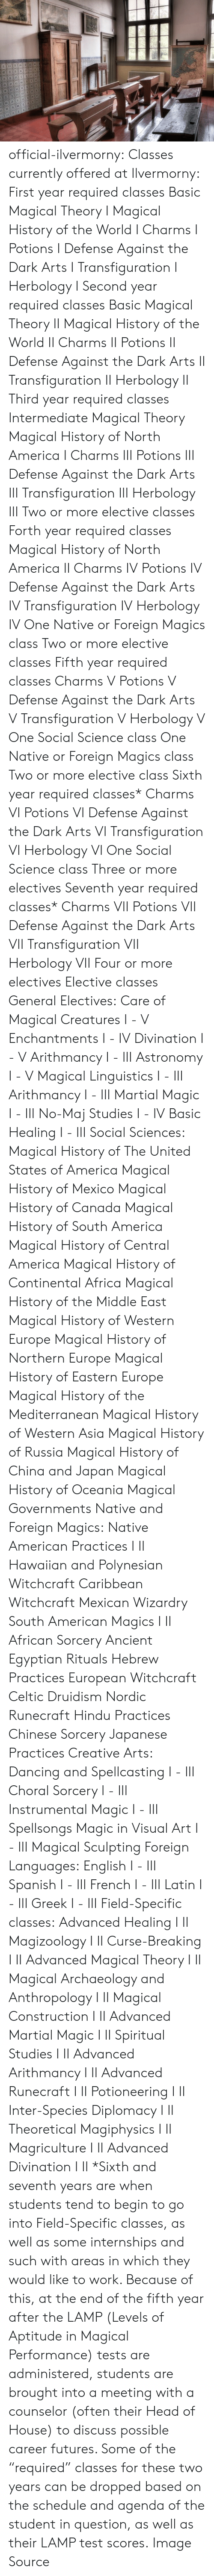 "Africa, America, and Celtic: official-ilvermorny:  Classes currently offered at Ilvermorny:  First year required classes  Basic Magical Theory I Magical History of the World I Charms I Potions I Defense Against the Dark Arts I Transfiguration I Herbology I   Second year required classes  Basic Magical Theory II Magical History of the World II Charms II Potions II Defense Against the Dark Arts II Transfiguration II Herbology II  Third year required classes  Intermediate Magical Theory Magical History of North America I Charms III Potions III Defense Against the Dark Arts III Transfiguration III Herbology III Two or more elective classes  Forth year required classes  Magical History of North America II Charms IV Potions IV Defense Against the Dark Arts IV Transfiguration IV Herbology IV One Native or Foreign Magics class Two or more elective classes  Fifth year required classes  Charms V Potions V Defense Against the Dark Arts V Transfiguration V Herbology V One Social Science class One Native or Foreign Magics class Two or more elective class  Sixth year required classes*  Charms VI Potions VI Defense Against the Dark Arts VI Transfiguration VI Herbology VI One Social Science class Three or more electives  Seventh year required classes*  Charms VII Potions VII Defense Against the Dark Arts VII Transfiguration VII Herbology VII Four or more electives  Elective classes  General Electives:  Care of Magical Creatures I - V Enchantments I - IV Divination I - V Arithmancy I - III Astronomy I - V Magical Linguistics I - III Arithmancy I - III Martial Magic I - III No-Maj Studies I - IV Basic Healing I - III  Social Sciences:  Magical History of The United States of America Magical History of Mexico Magical History of Canada Magical History of South America Magical History of Central America Magical History of Continental Africa Magical History of the Middle East Magical History of Western Europe Magical History of Northern Europe Magical History of Eastern Europe Magical History of the Mediterranean Magical History of Western Asia Magical History of Russia Magical History of China and Japan Magical History of Oceania Magical Governments  Native and Foreign Magics:  Native American Practices I  II Hawaiian and Polynesian Witchcraft Caribbean Witchcraft Mexican Wizardry South American Magics I  II African Sorcery Ancient Egyptian Rituals Hebrew Practices European Witchcraft Celtic Druidism Nordic Runecraft Hindu Practices Chinese Sorcery Japanese Practices   Creative Arts:  Dancing and Spellcasting I - III Choral Sorcery I - III Instrumental Magic I - III Spellsongs Magic in Visual Art I - III Magical Sculpting  Foreign Languages:  English I - III Spanish I - III French I - III Latin I - III Greek I - III  Field-Specific classes:  Advanced Healing I  II Magizoology I  II Curse-Breaking I  II Advanced Magical Theory I  II Magical Archaeology and Anthropology I  II Magical Construction I  II Advanced Martial Magic I  II Spiritual Studies I  II Advanced Arithmancy I  II Advanced Runecraft I  II Potioneering I  II Inter-Species Diplomacy I  II Theoretical Magiphysics I  II Magriculture I  II Advanced Divination I  II  *Sixth and seventh years are when students tend to begin to go into Field-Specific classes, as well as some internships and such with areas in which they would like to work. Because of this, at the end of the fifth year after the LAMP (Levels of Aptitude in Magical Performance) tests are administered, students are brought into a meeting with a counselor (often their Head of House) to discuss possible career futures. Some of the ""required"" classes for these two years can be dropped based on the schedule and agenda of the student in question, as well as their LAMP test scores.  Image Source"